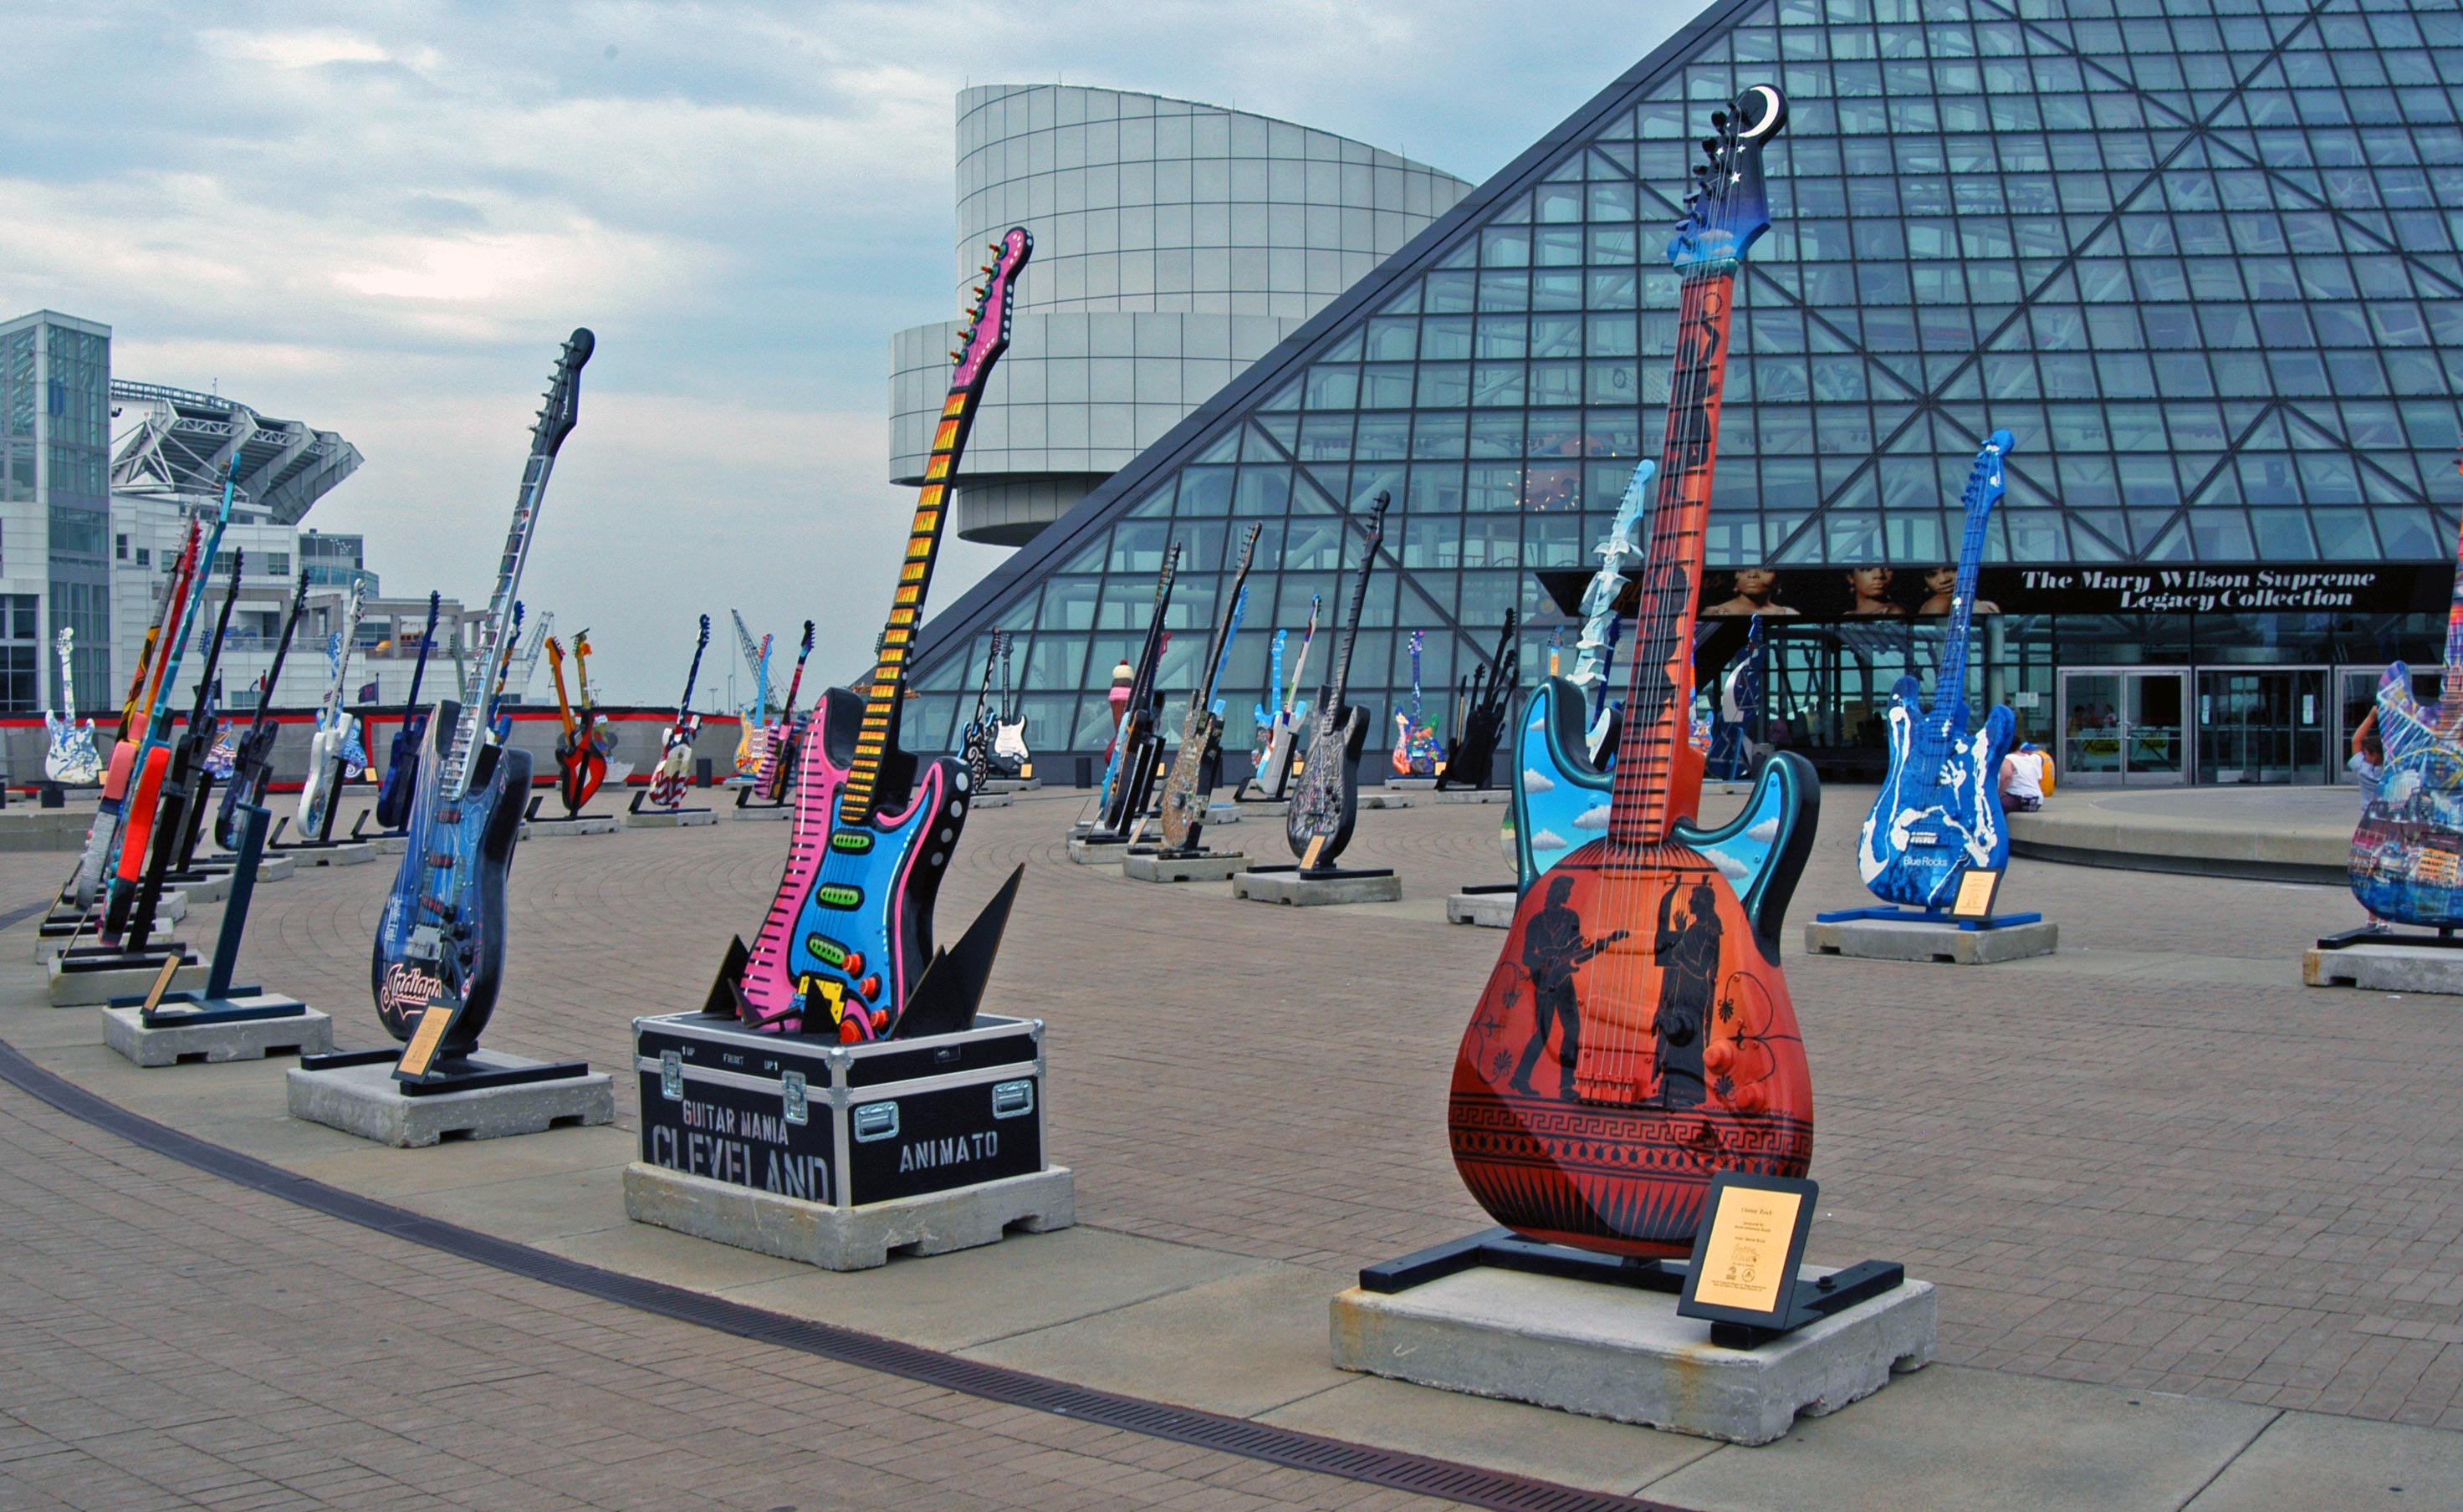 rock and roll hall of fame, cleaveland ohio, music bucket list